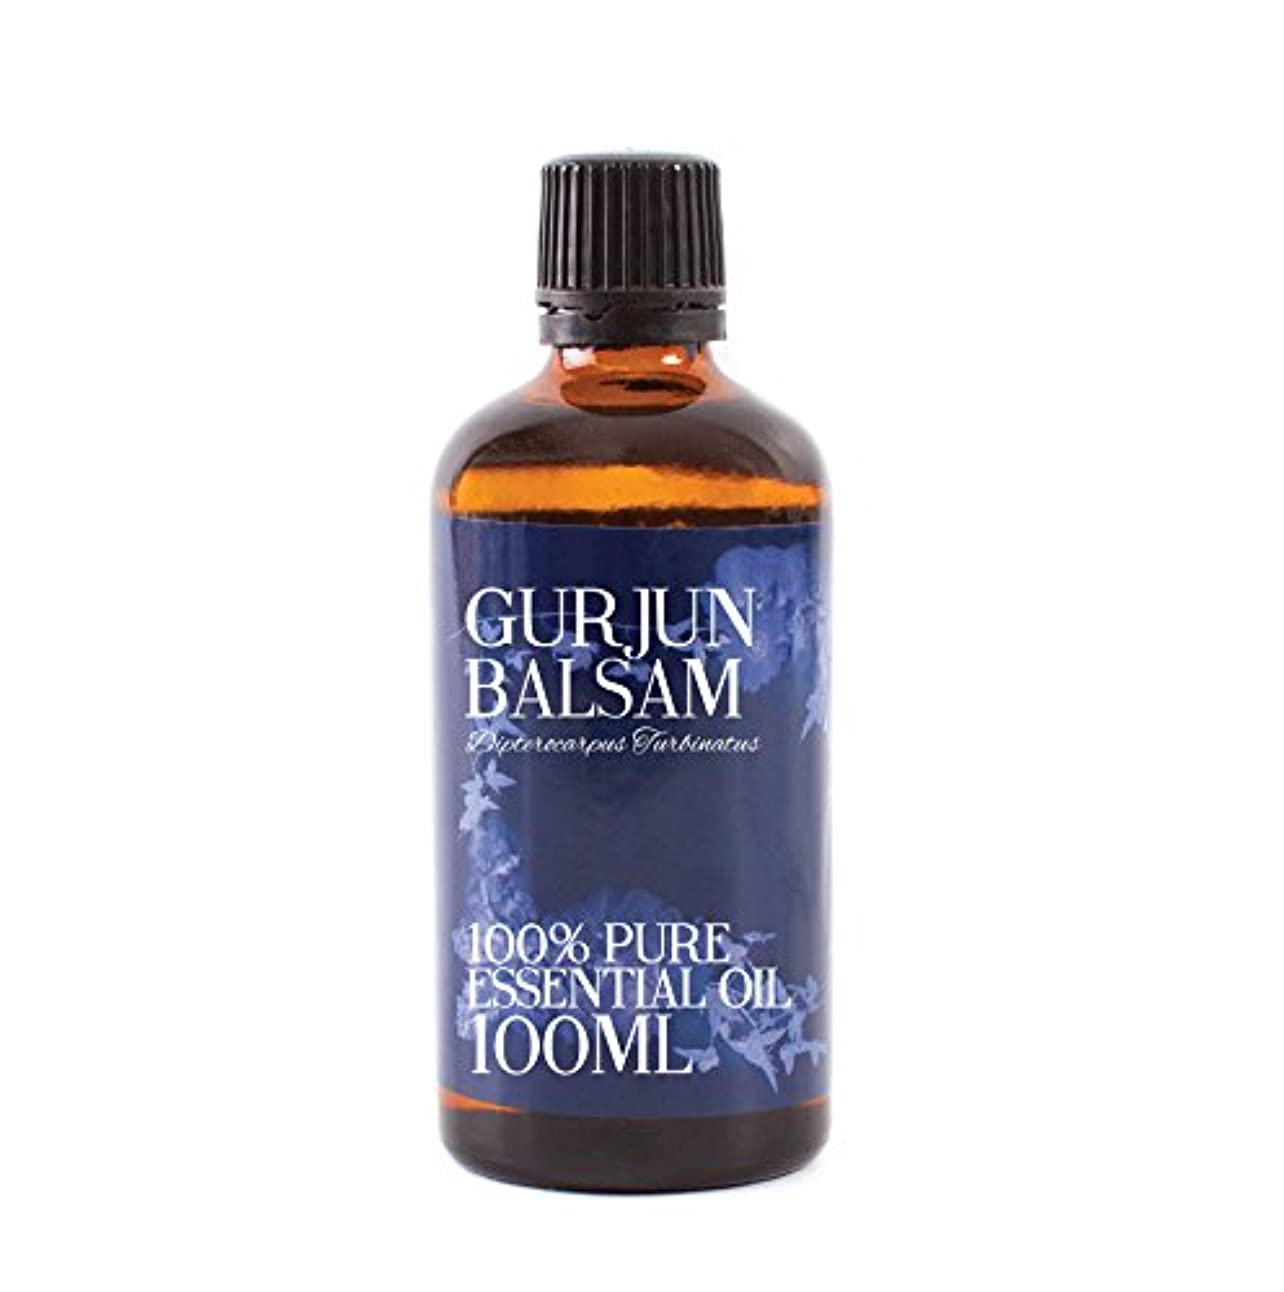 発表する風邪をひくどちらかMystic Moments | Gurjun Balsam Essential Oil - 100ml - 100% Pure